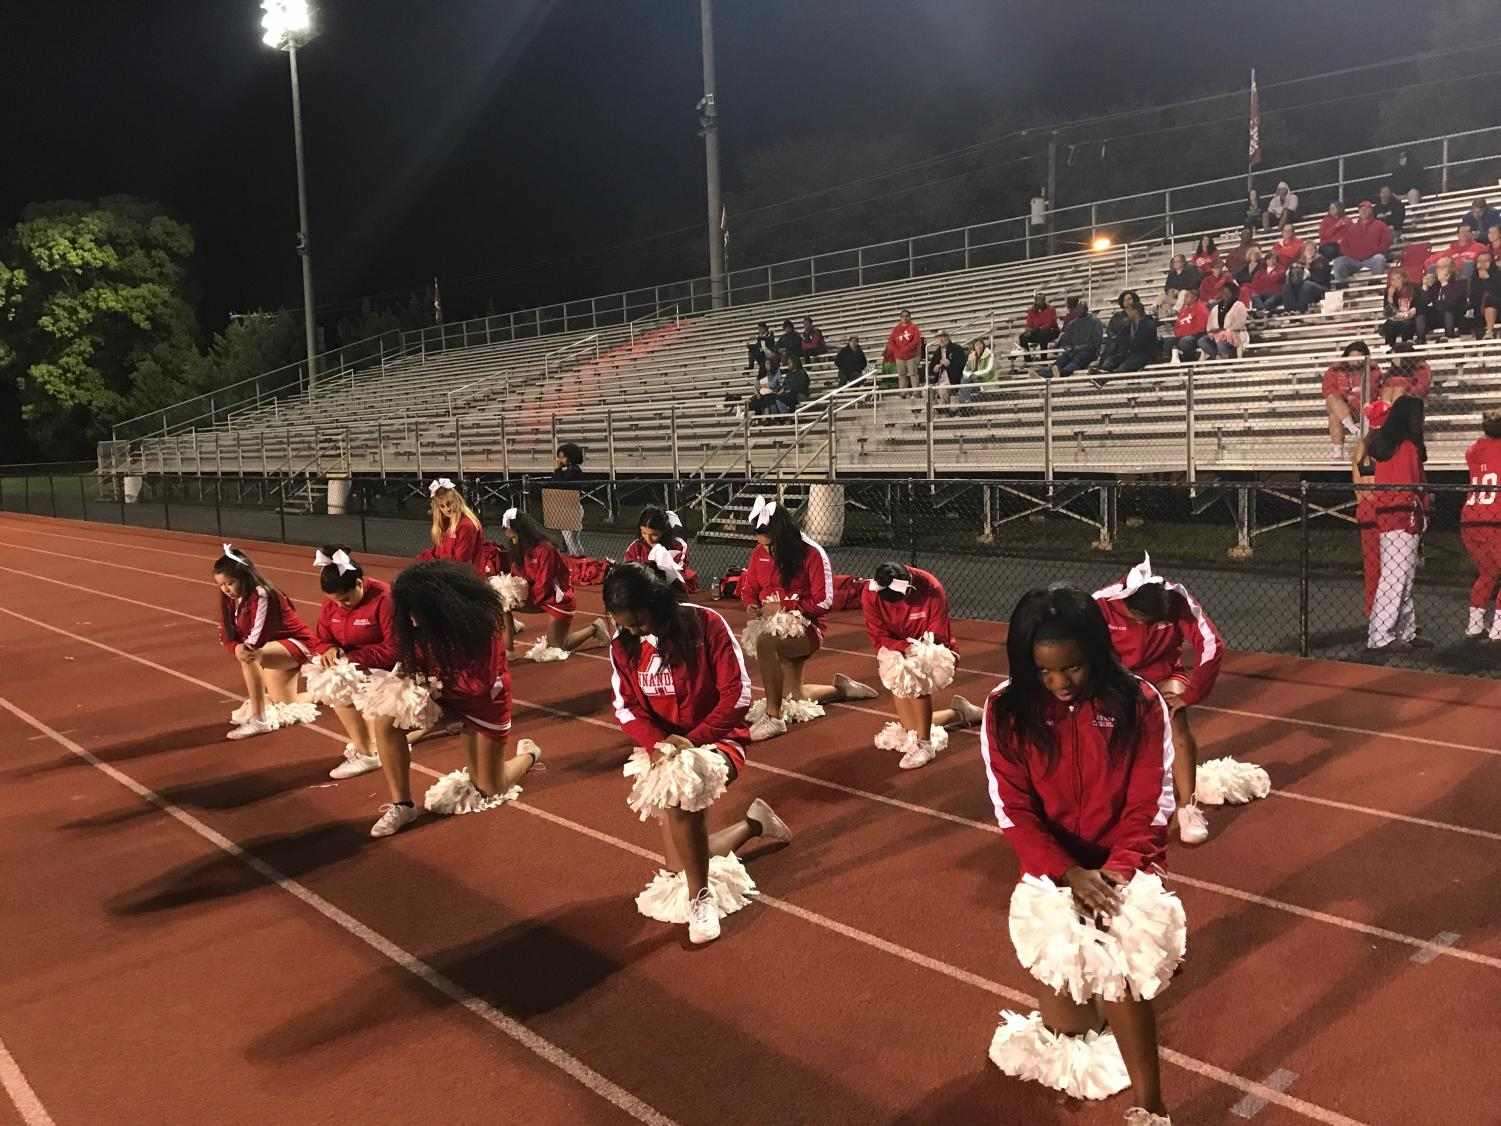 The varsity cheerleaders pose to show how some of them a knee during the national anthem.